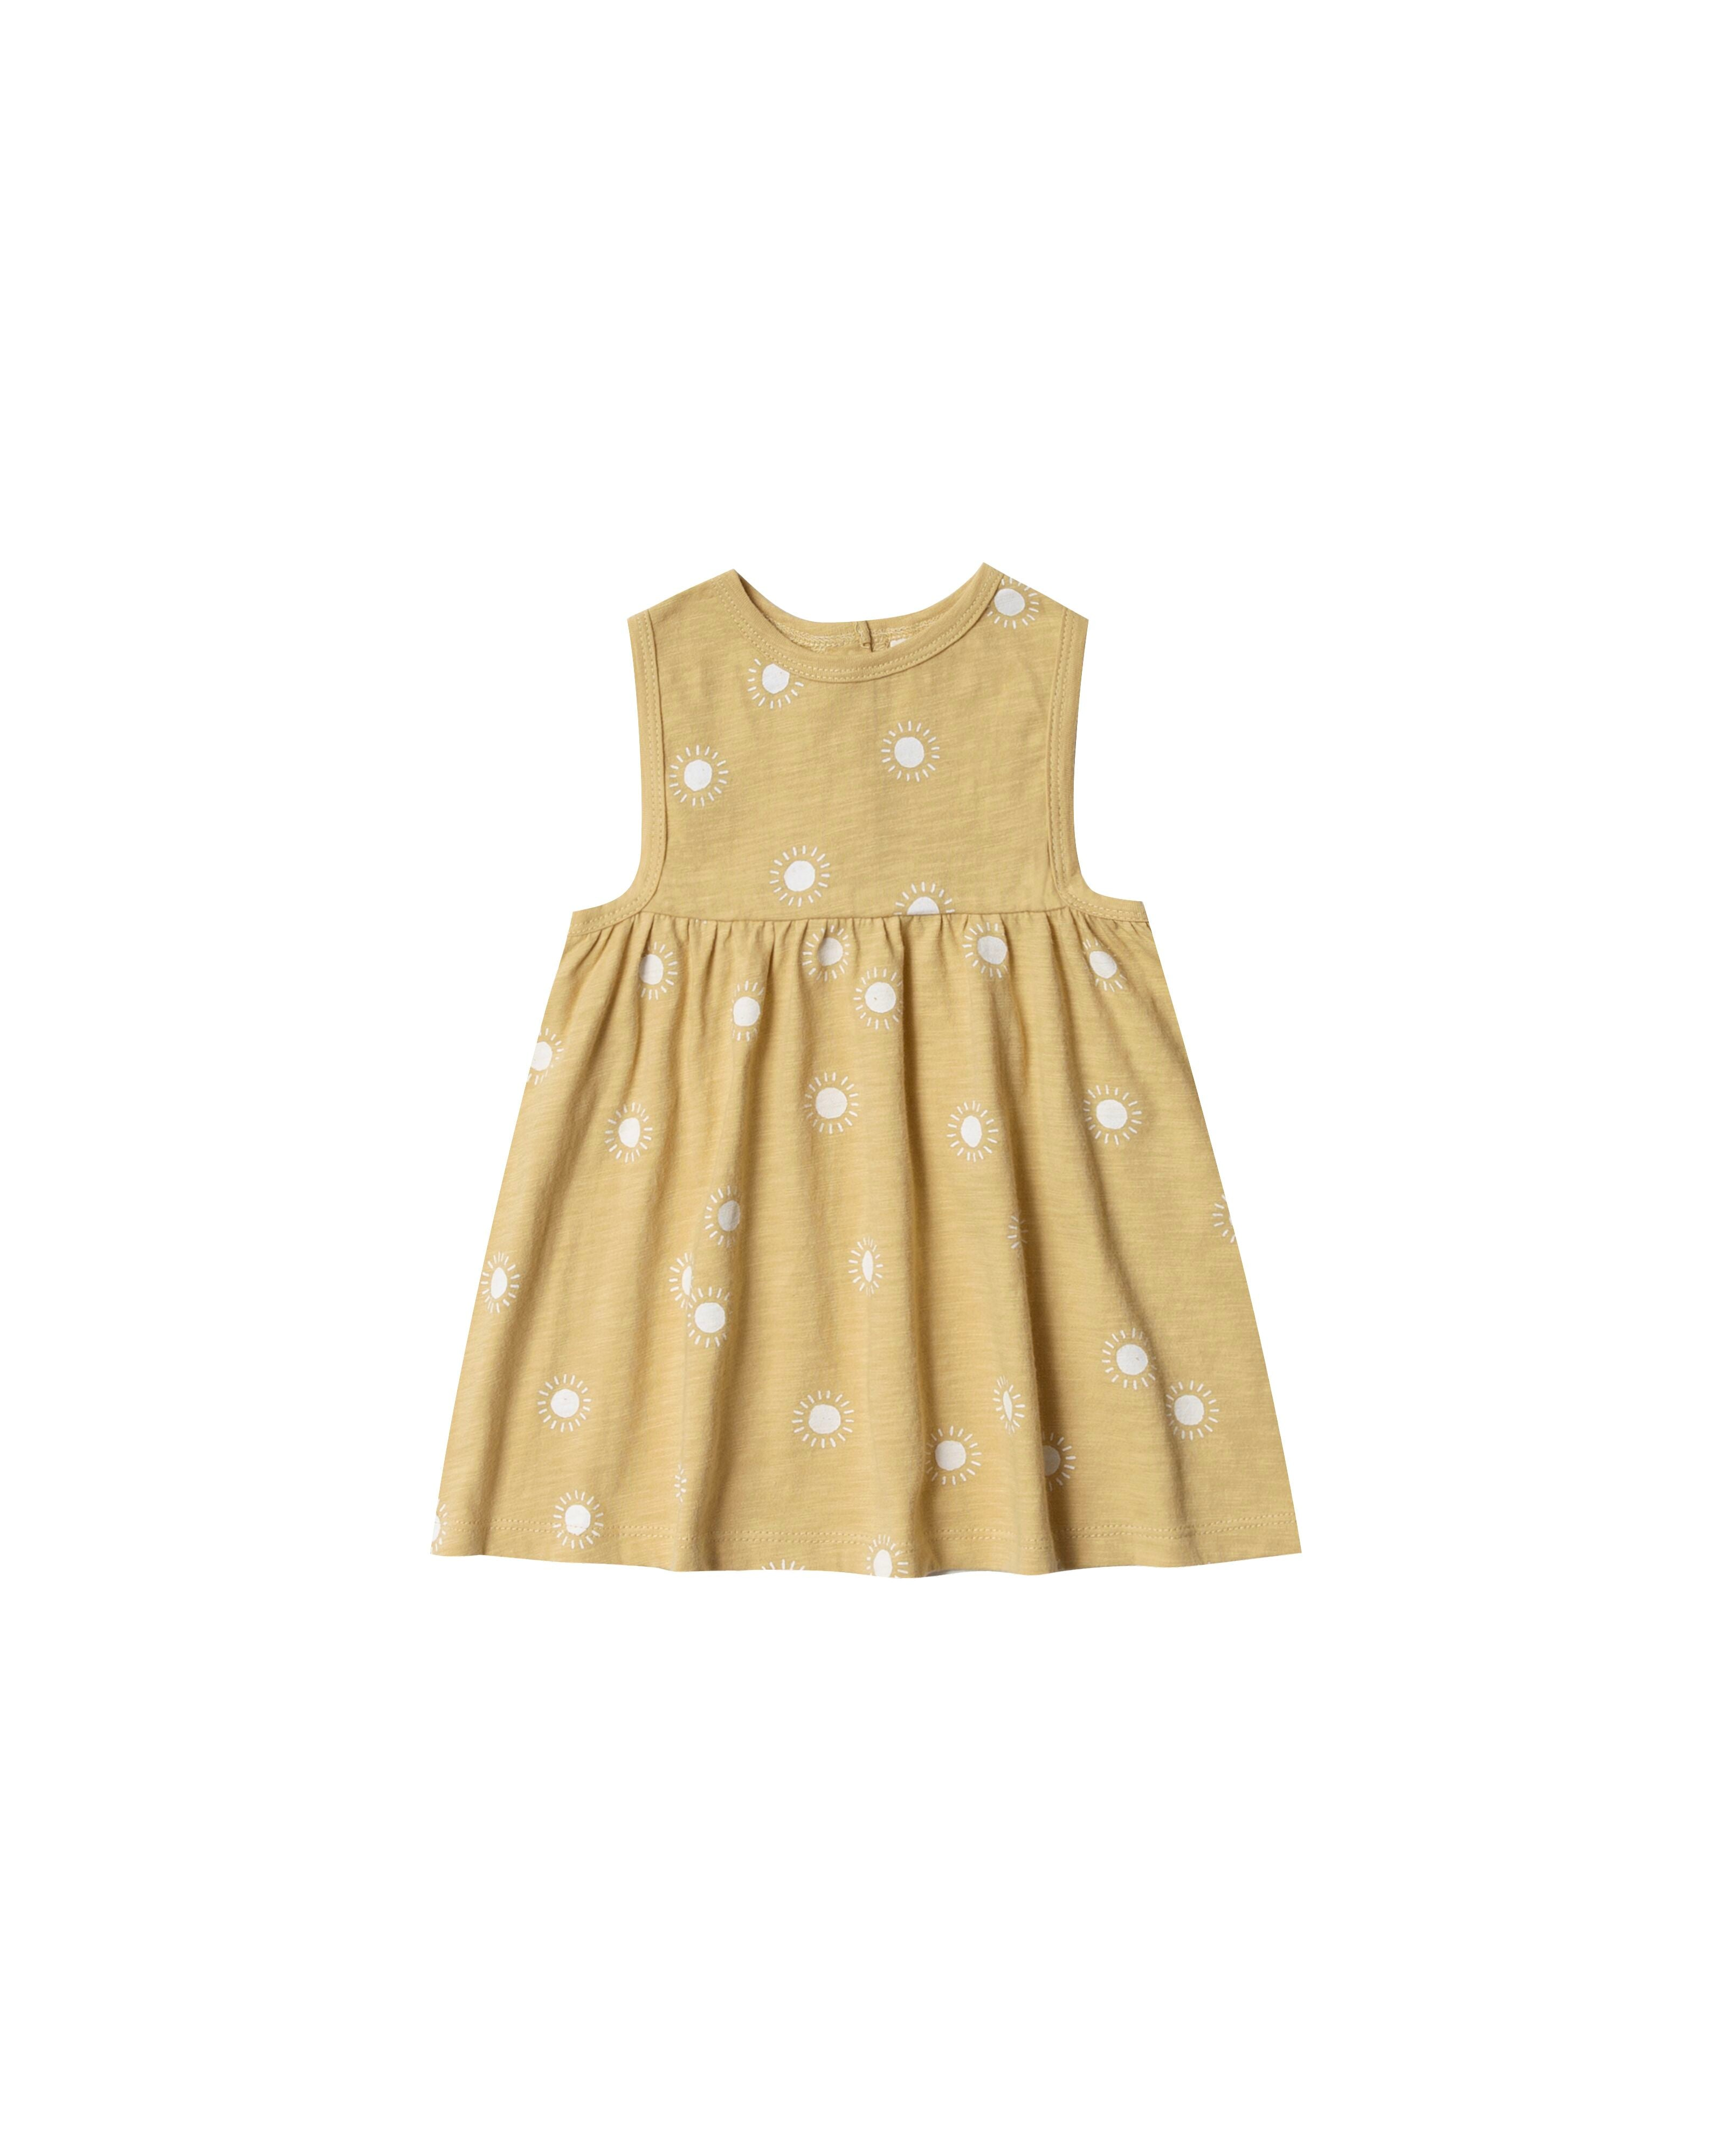 Rylee + Cru - Hometown Collection - Sunburst Layla Dress